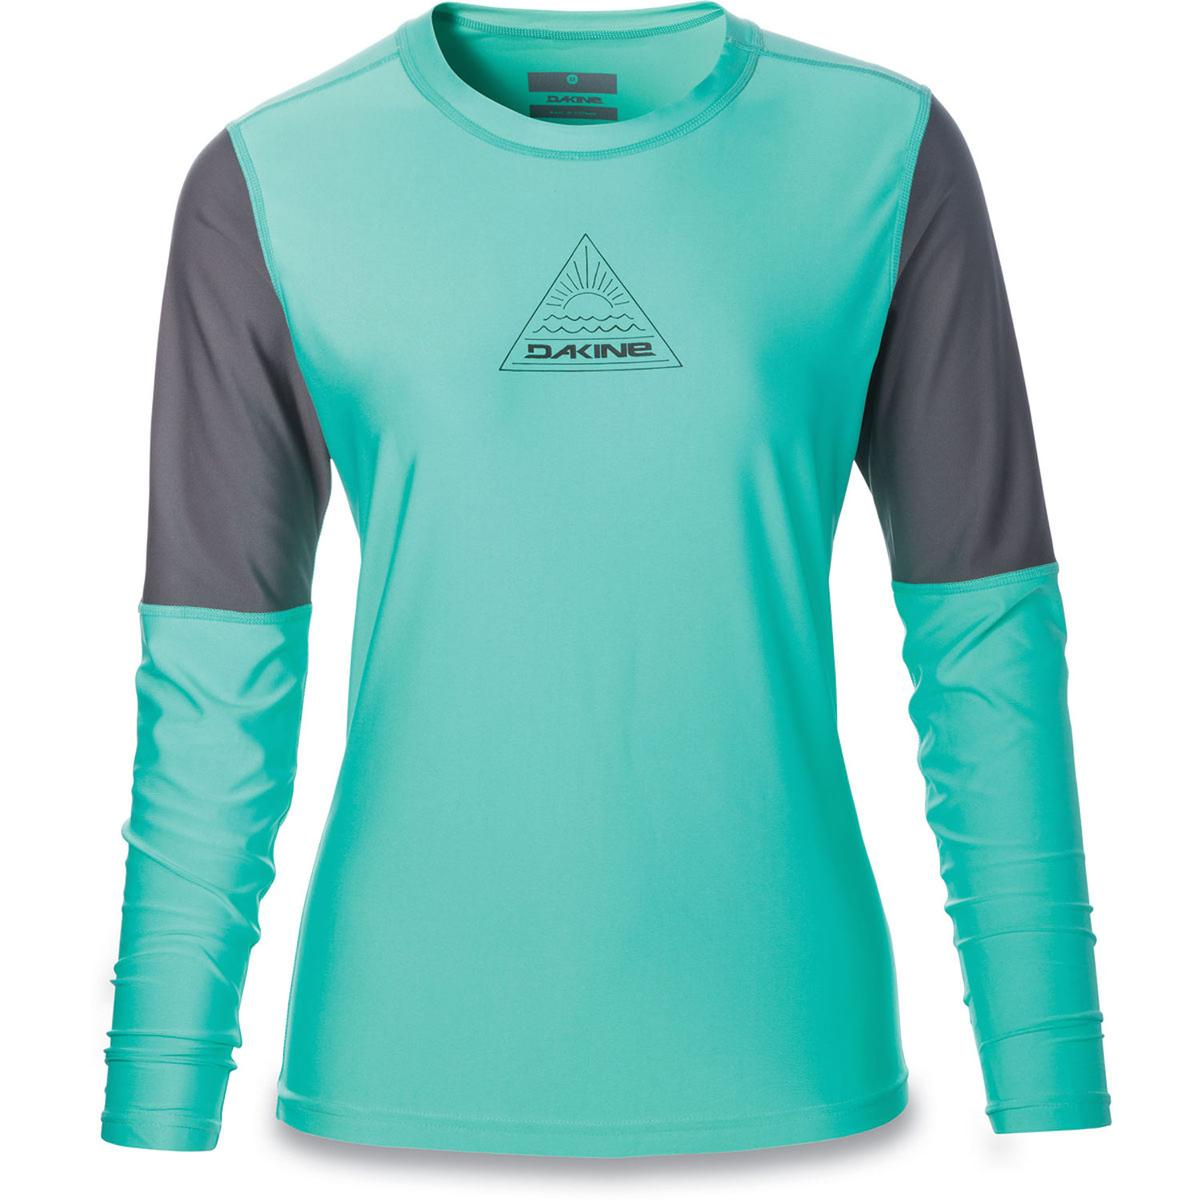 Dakine Flow Loose Fit Long Sleeve Women's Rashguard